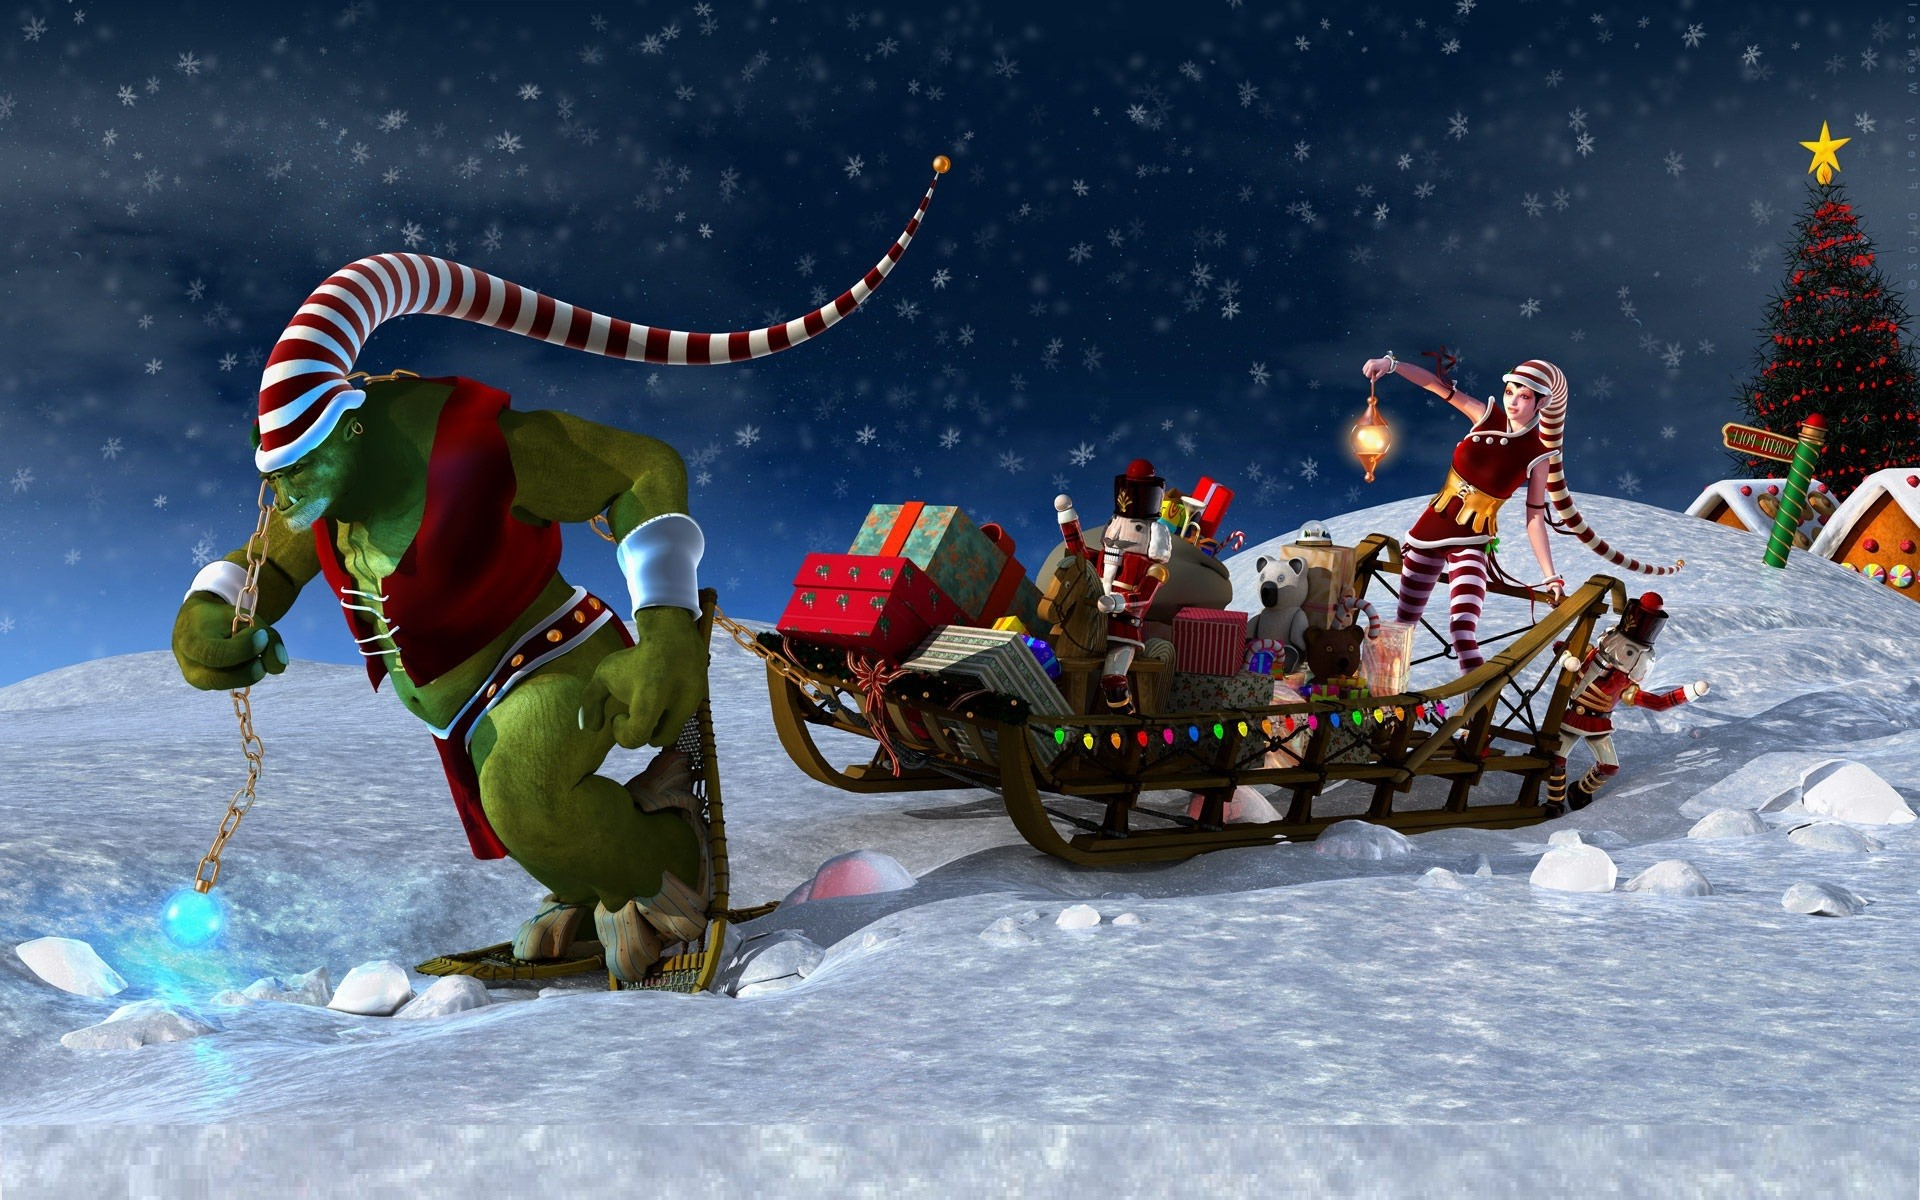 Animated Christmas Backgrounds For Desktop 17359 Wallpaper 1920x1200